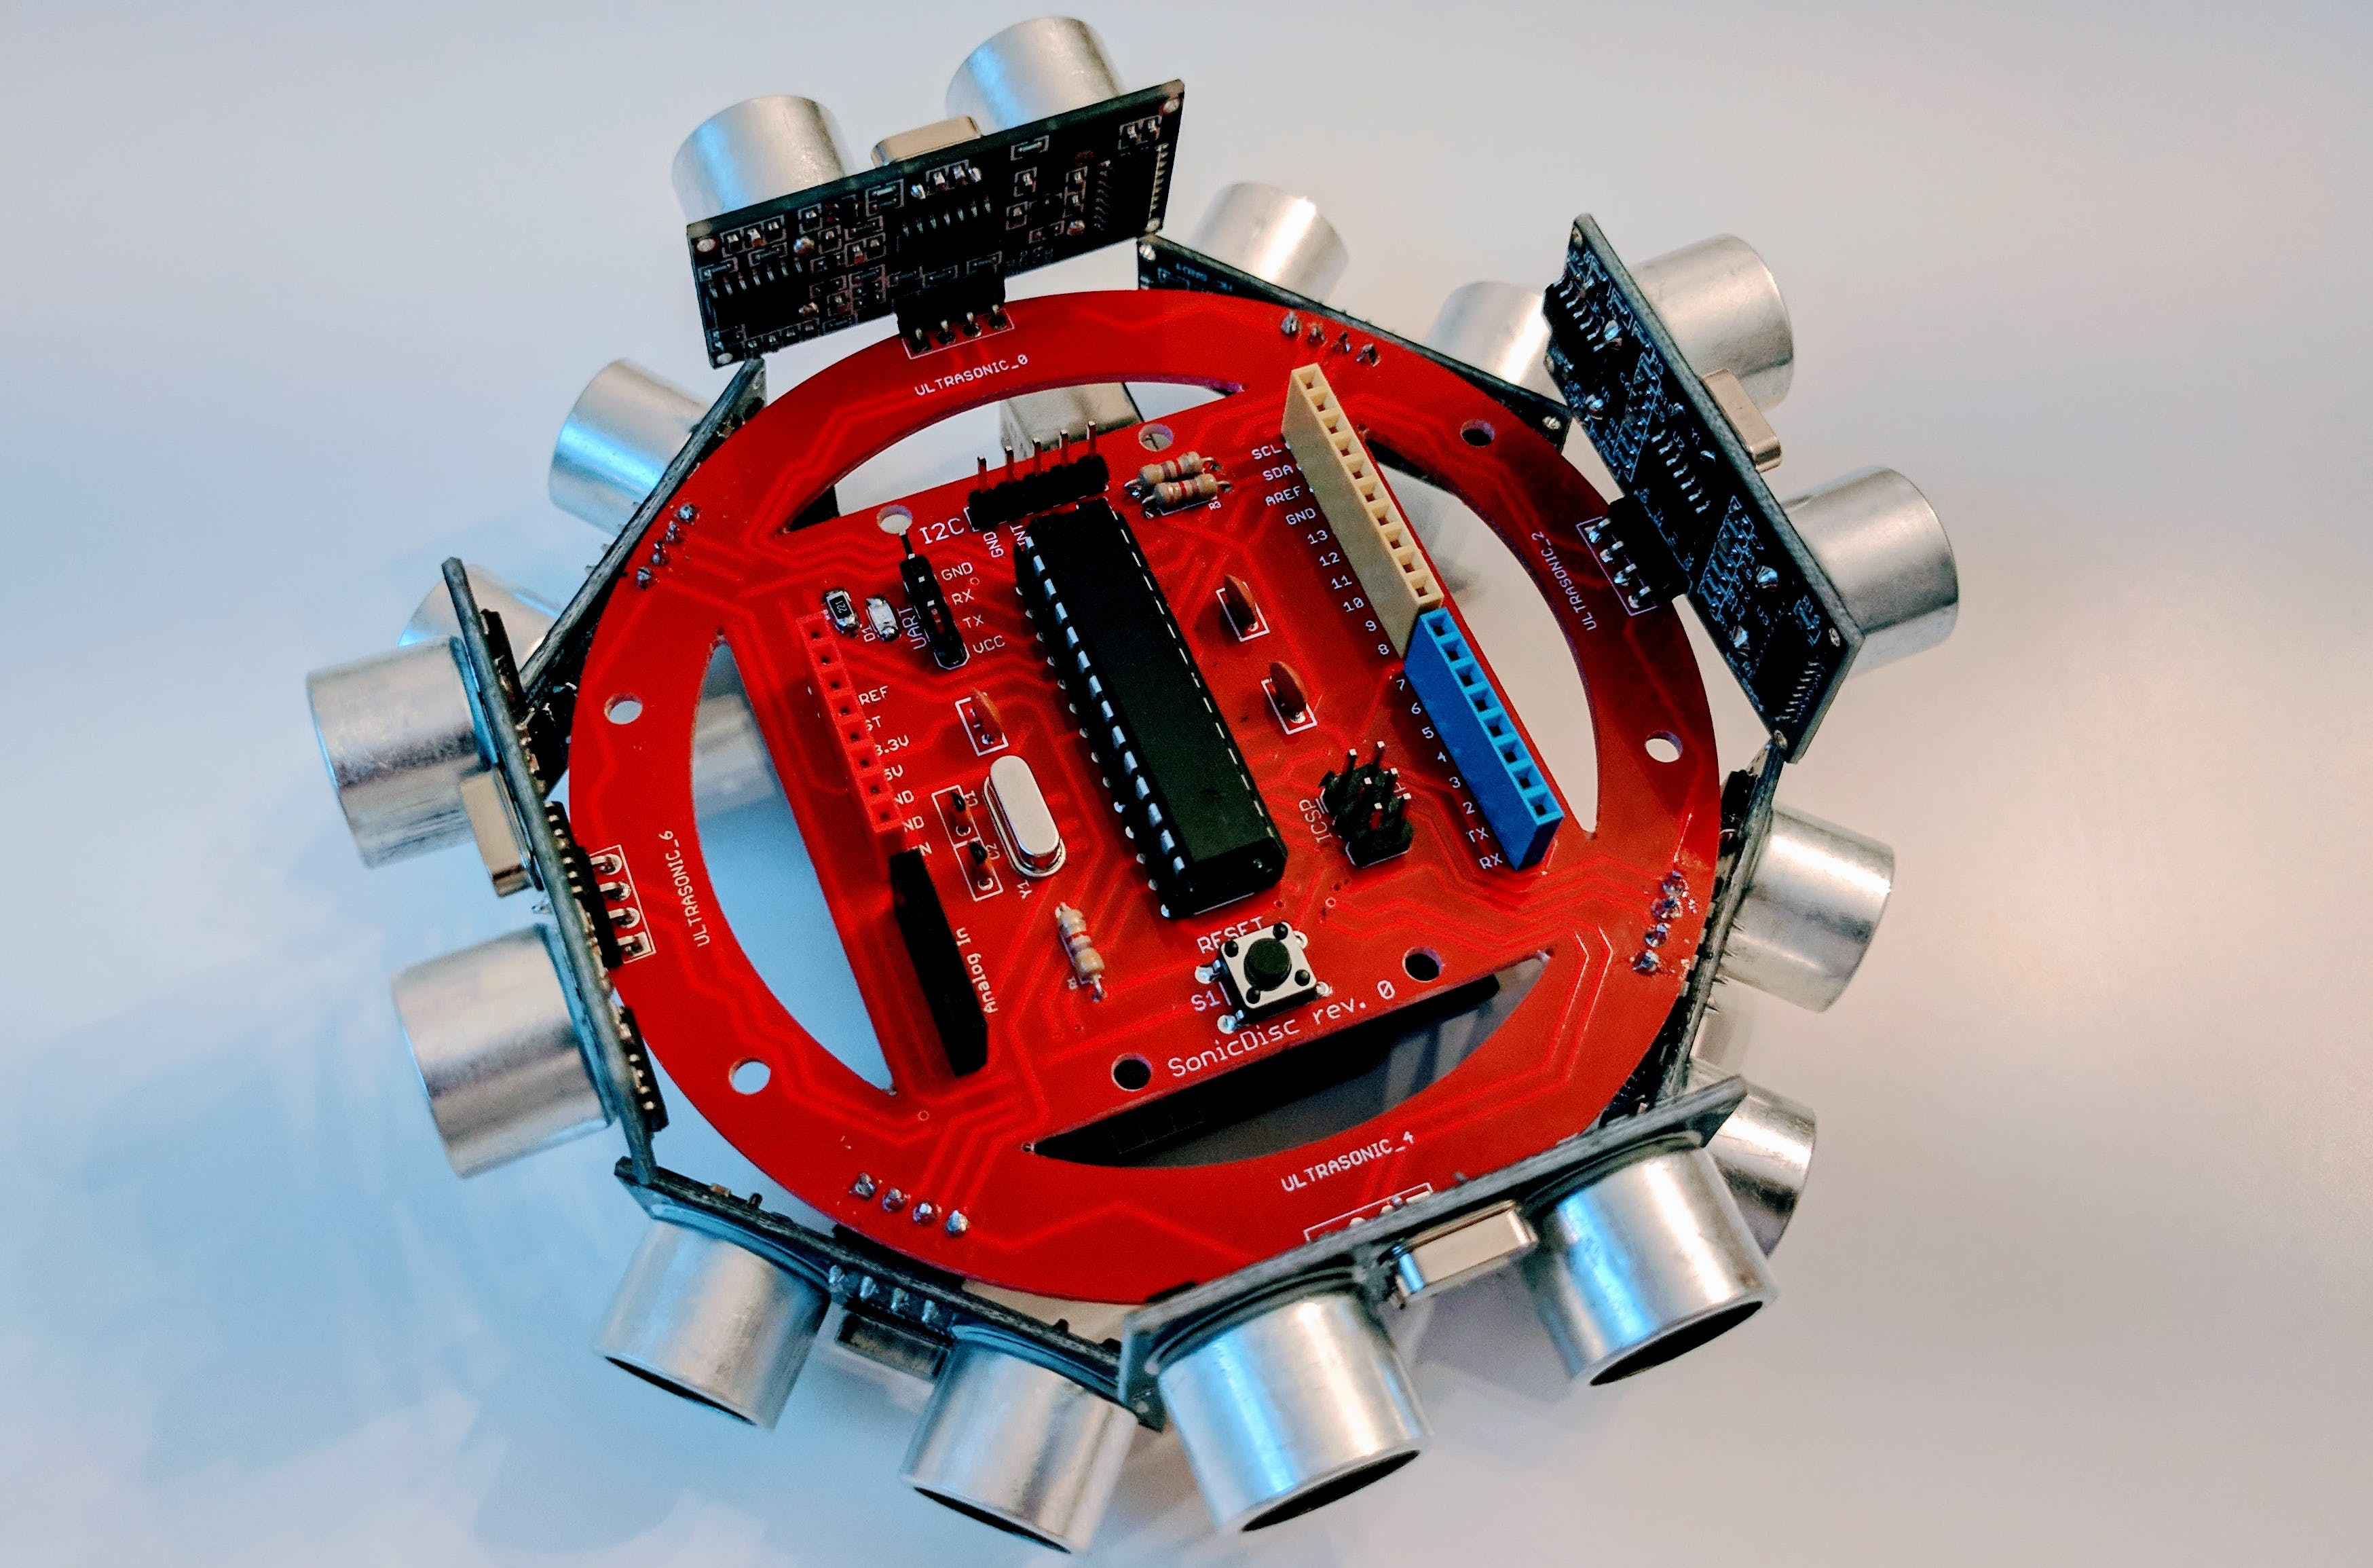 A SonicDisc mounted on an Arduino